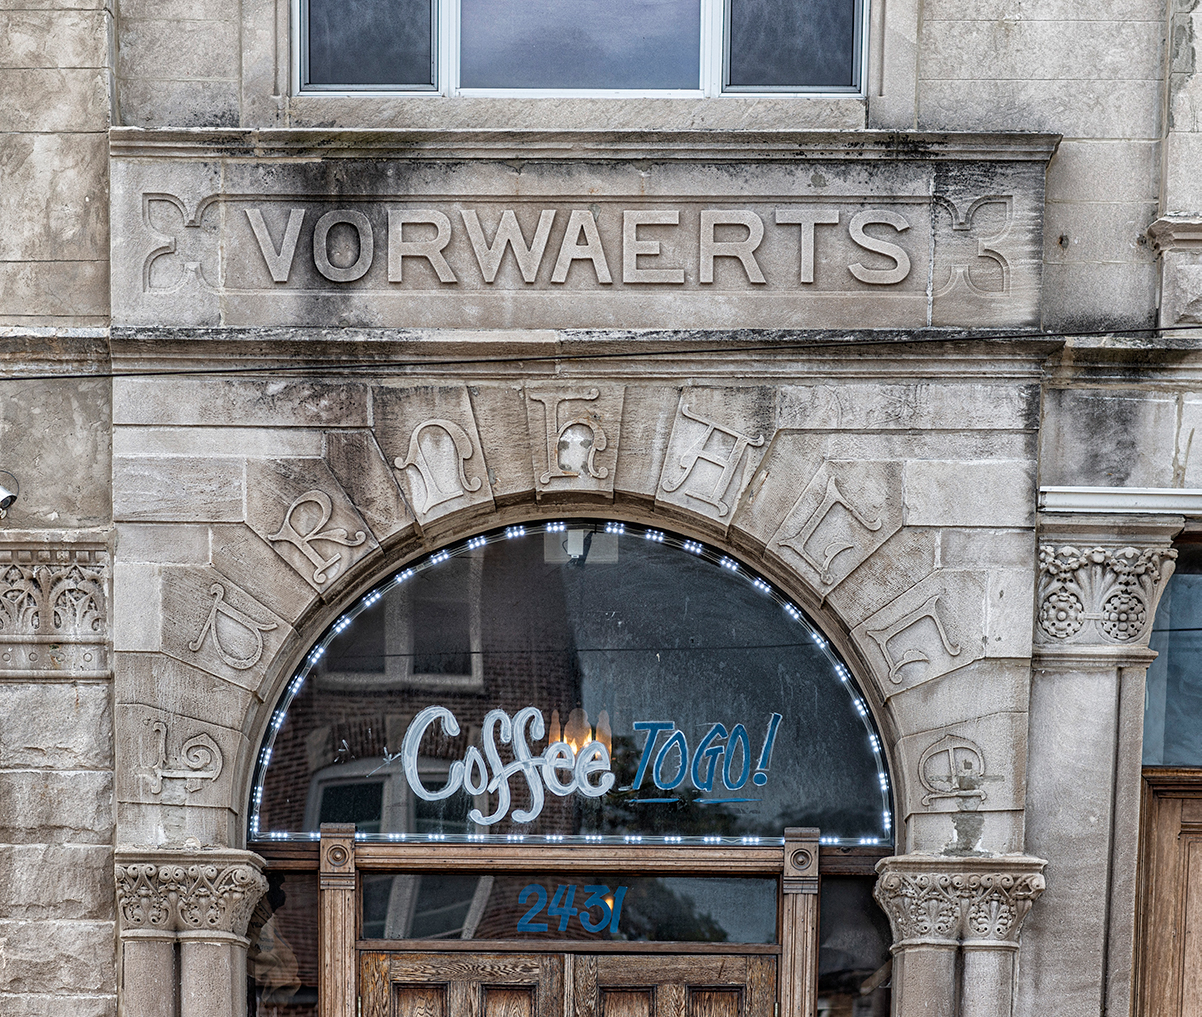 Vorwearts above the door